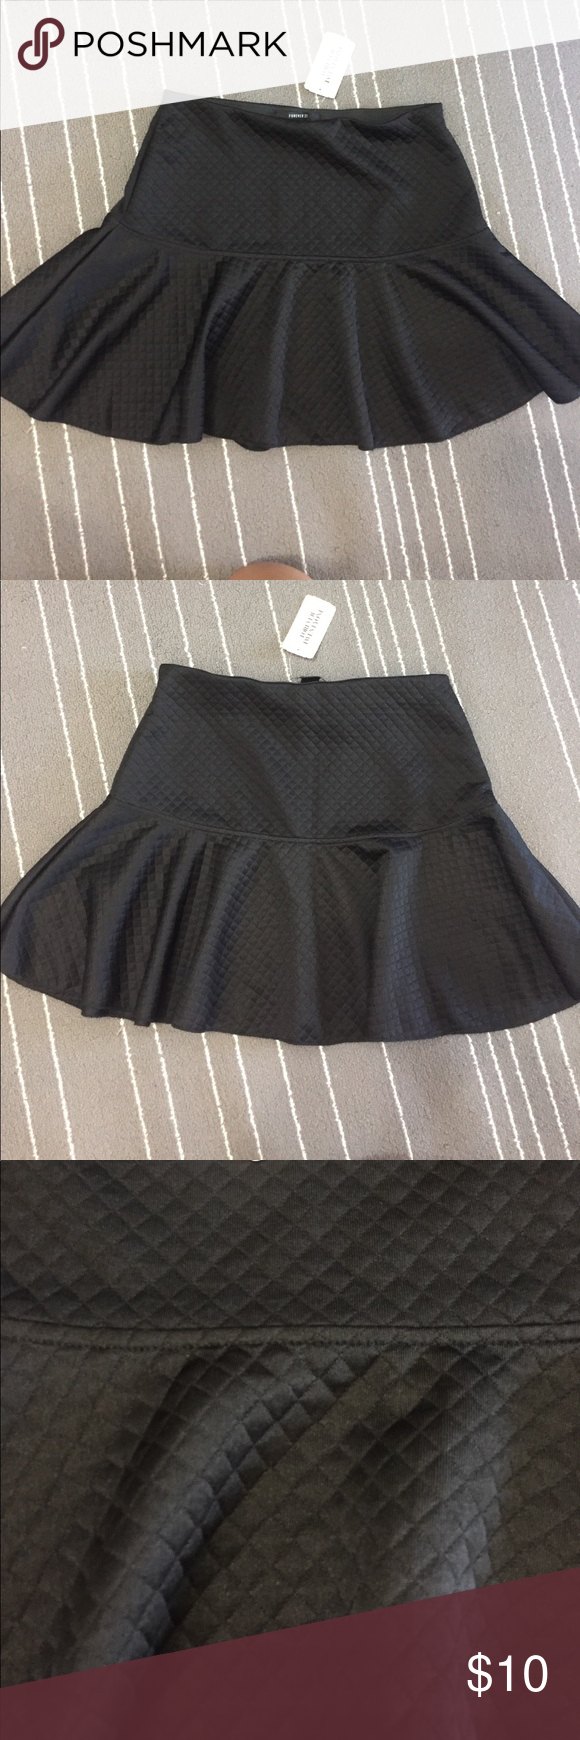 🌱Black Retro Skirt Super flirty black retro looking skirt. Fabric has very modern pattern! (See pic) the fit looks a bit retro! It's super flattering and has the bottom skater style which makes it super fun and comfortable. Forever 21 Skirts Mini